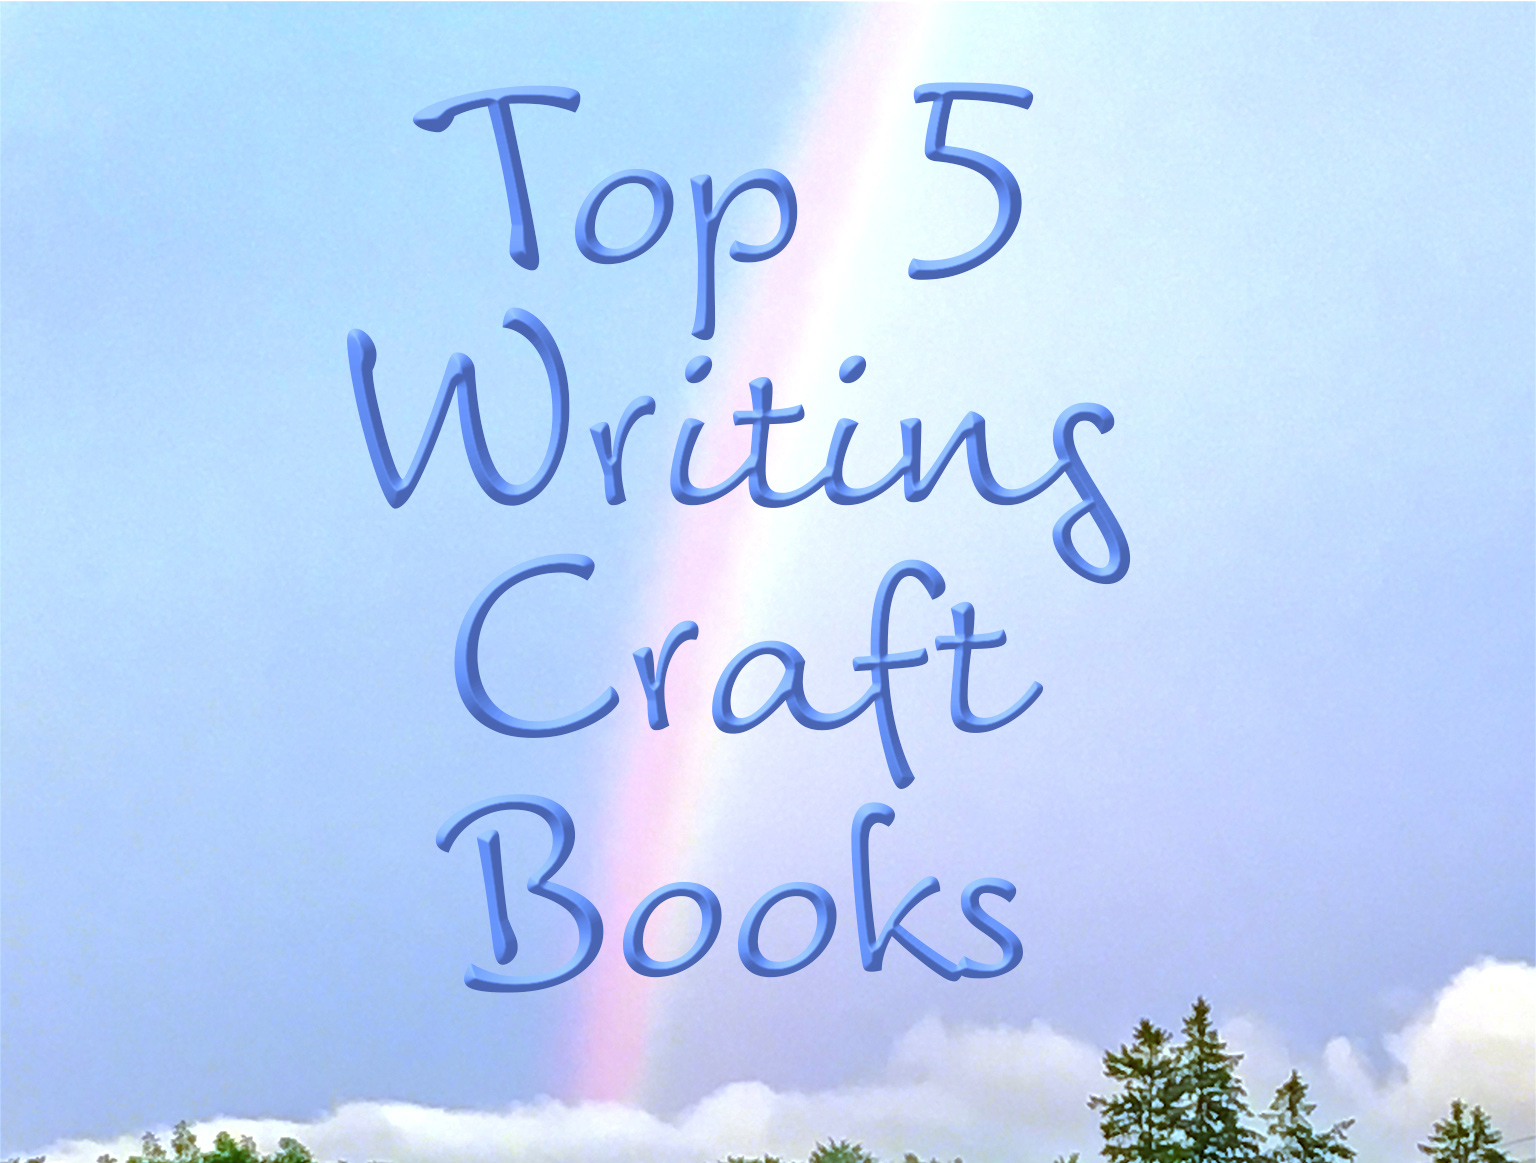 Top 5 writing craft books for Best craft books 2017